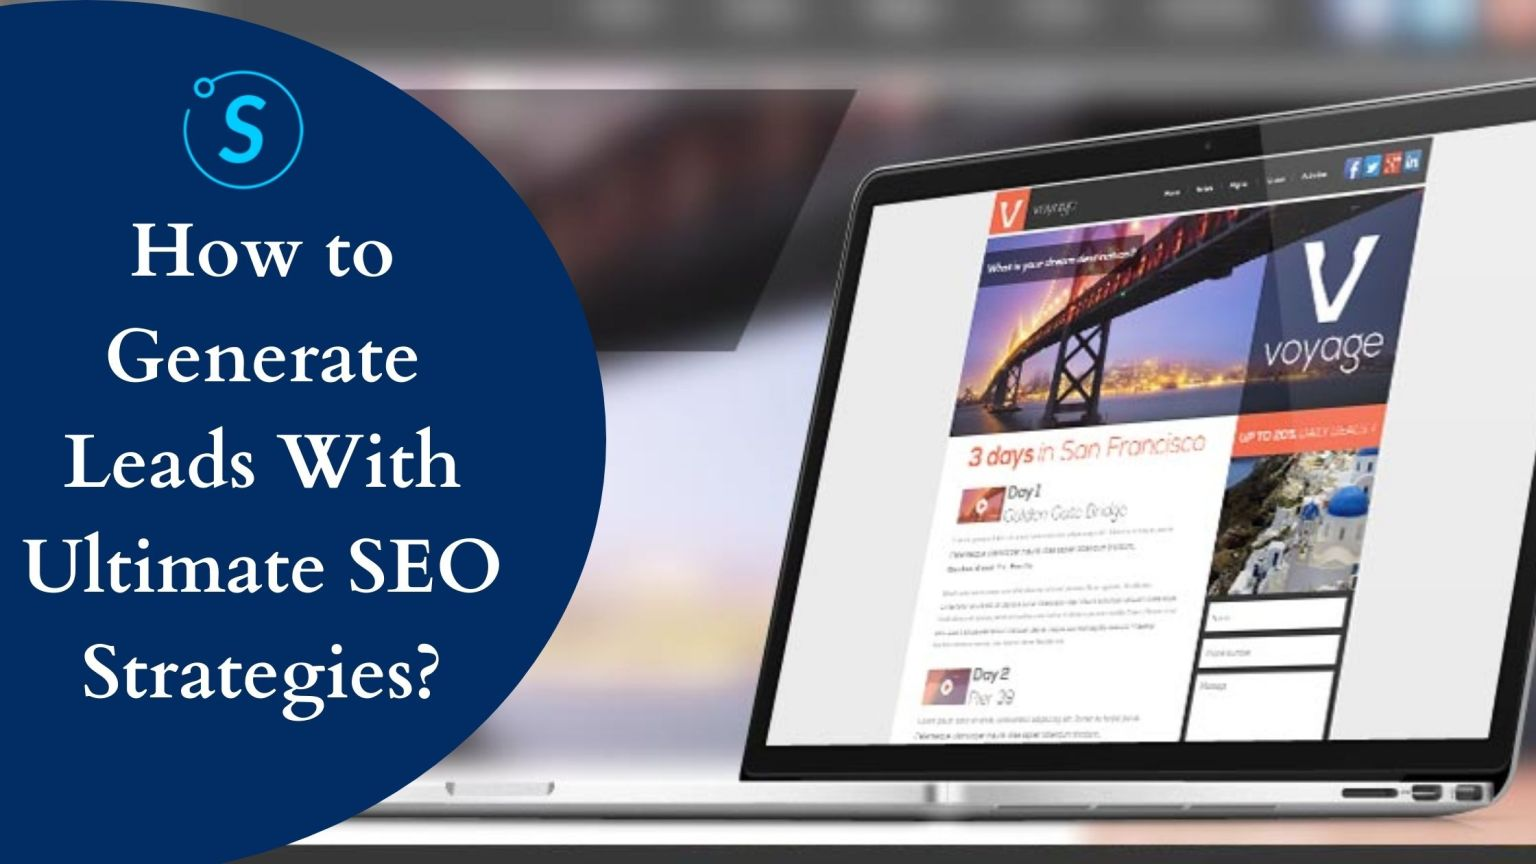 How-to-Generate-Leads-With-Ultimate-SEO-Strategies